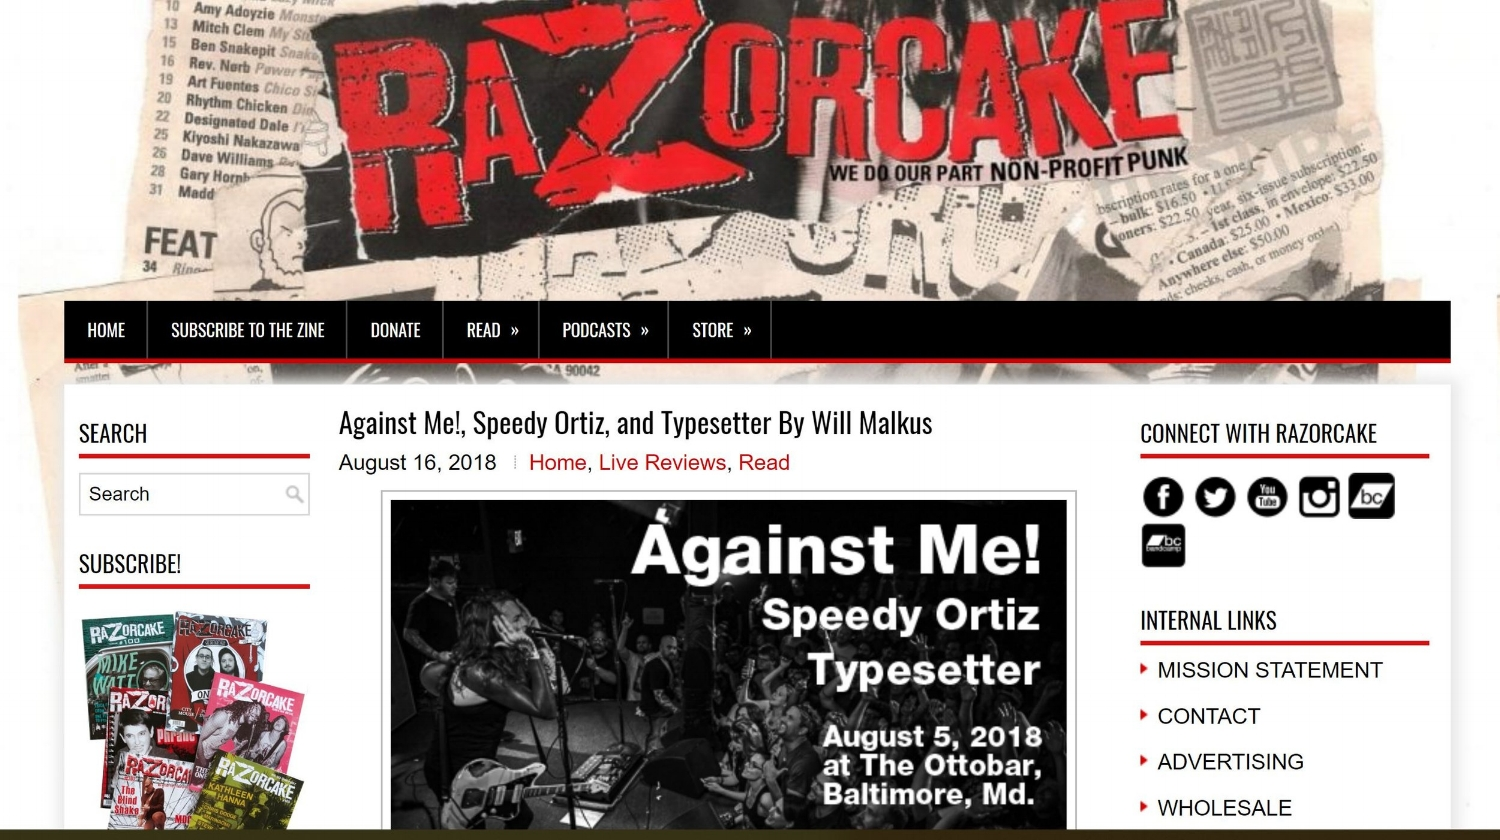 Against Me!, Speedy Ortiz, and Typesetter at the Ottobar - Live Music Review for Razorcake, 2018